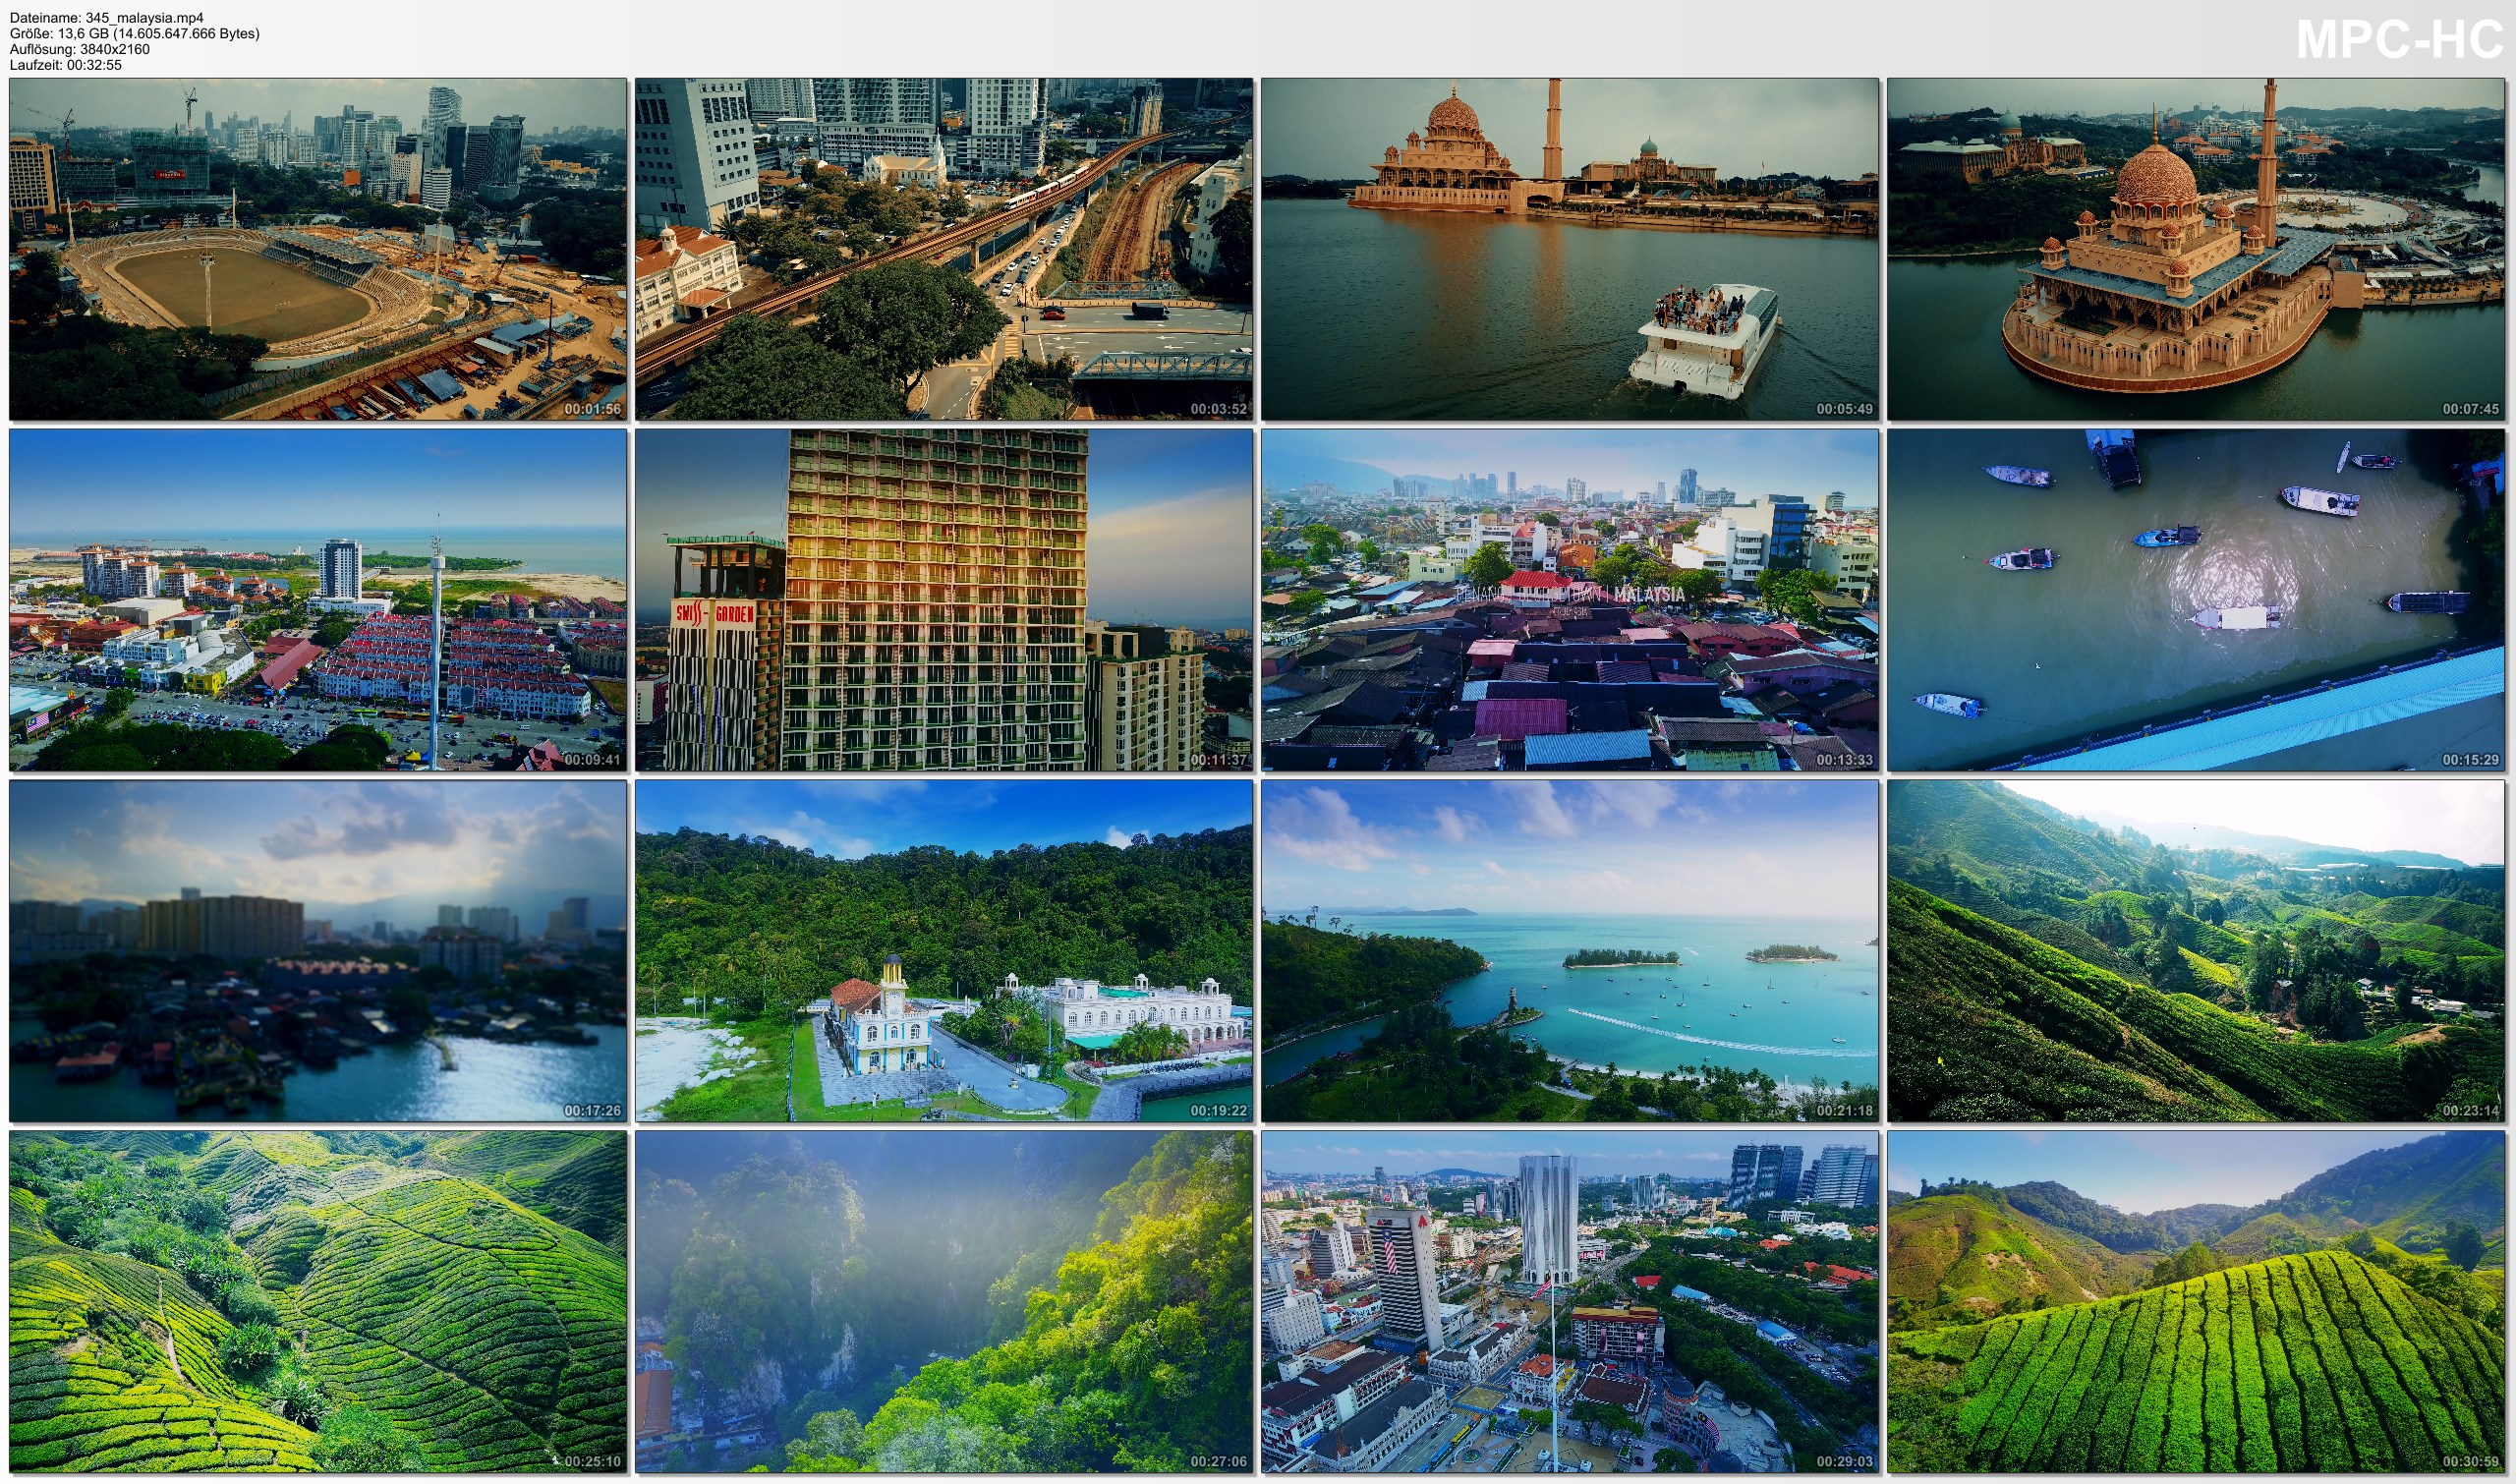 Drone Pictures from Video 【4K】Drone Footage | The Beauty of Malaysia in 33 Minutes 2019 | Cinematic Aerial KL Melaka Penang